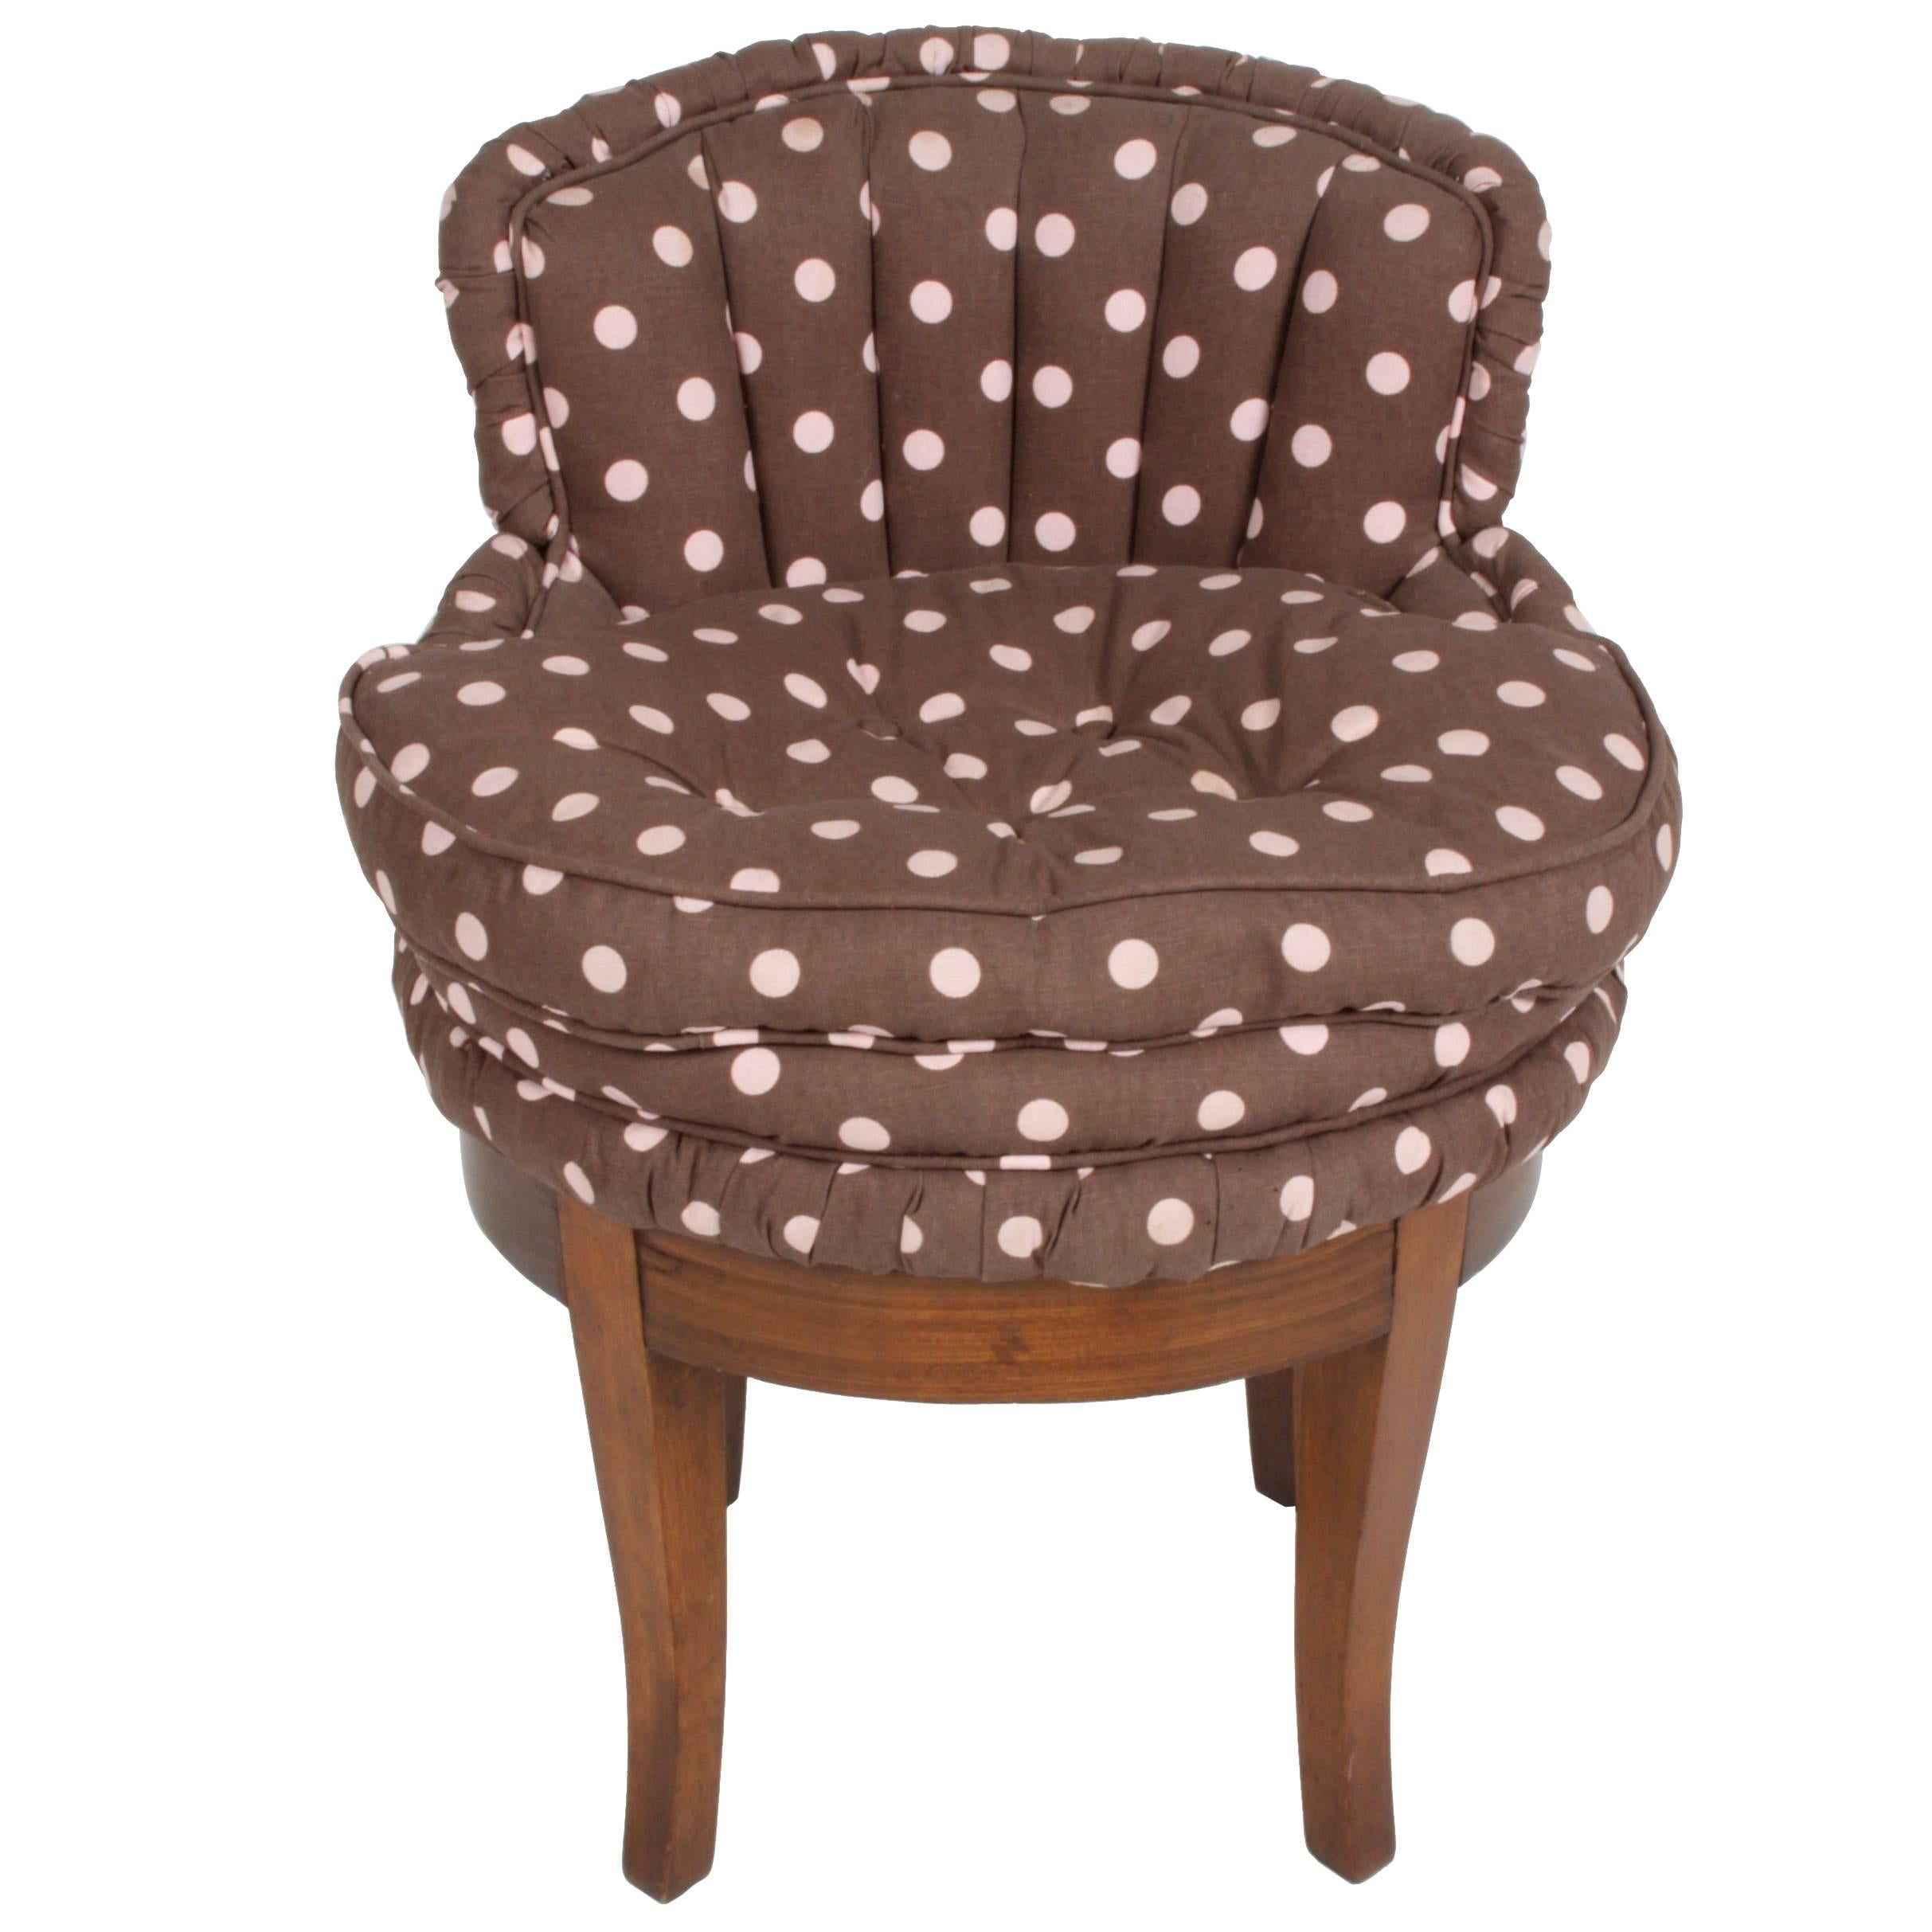 Tufted Vanity Chair 1940s Tufted Swivel Vanity Stool